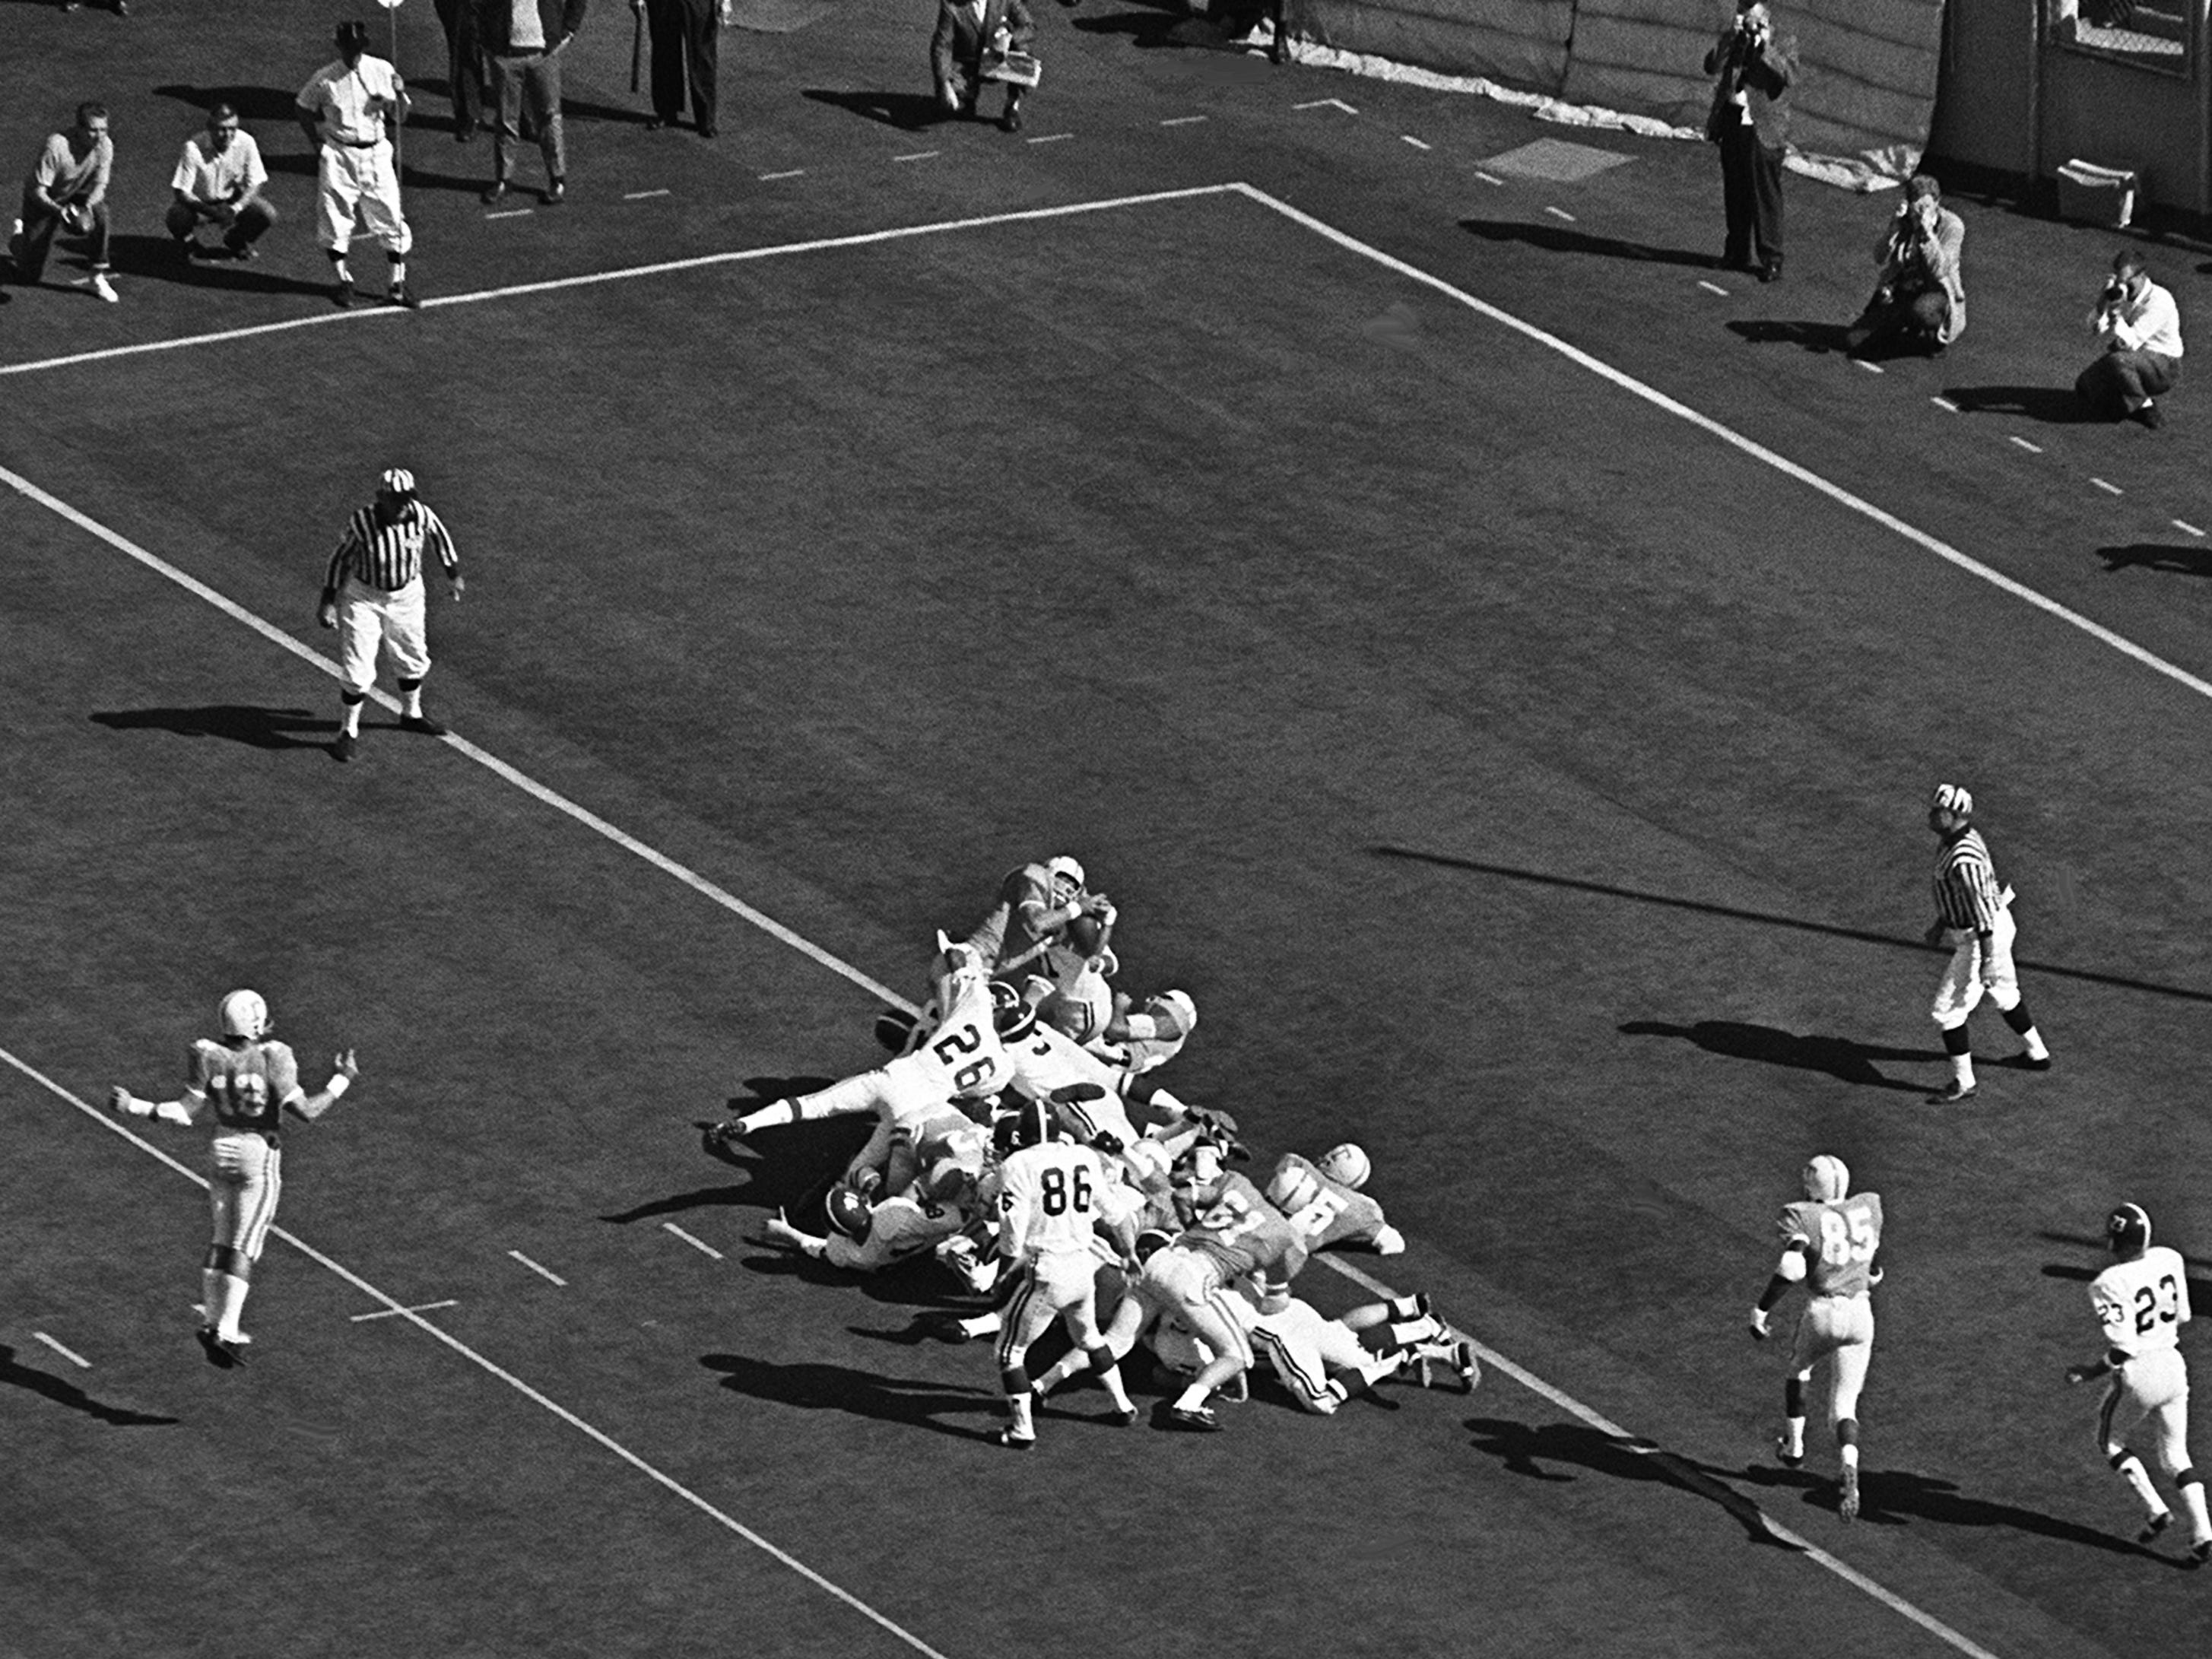 Tennessee senior back Richmond Flowers (22) dives over the goal line from the one in the first quarter for the only touchdown of the game for the Vols against Alabama at Neyland Stadium Oct. 19, 1968.